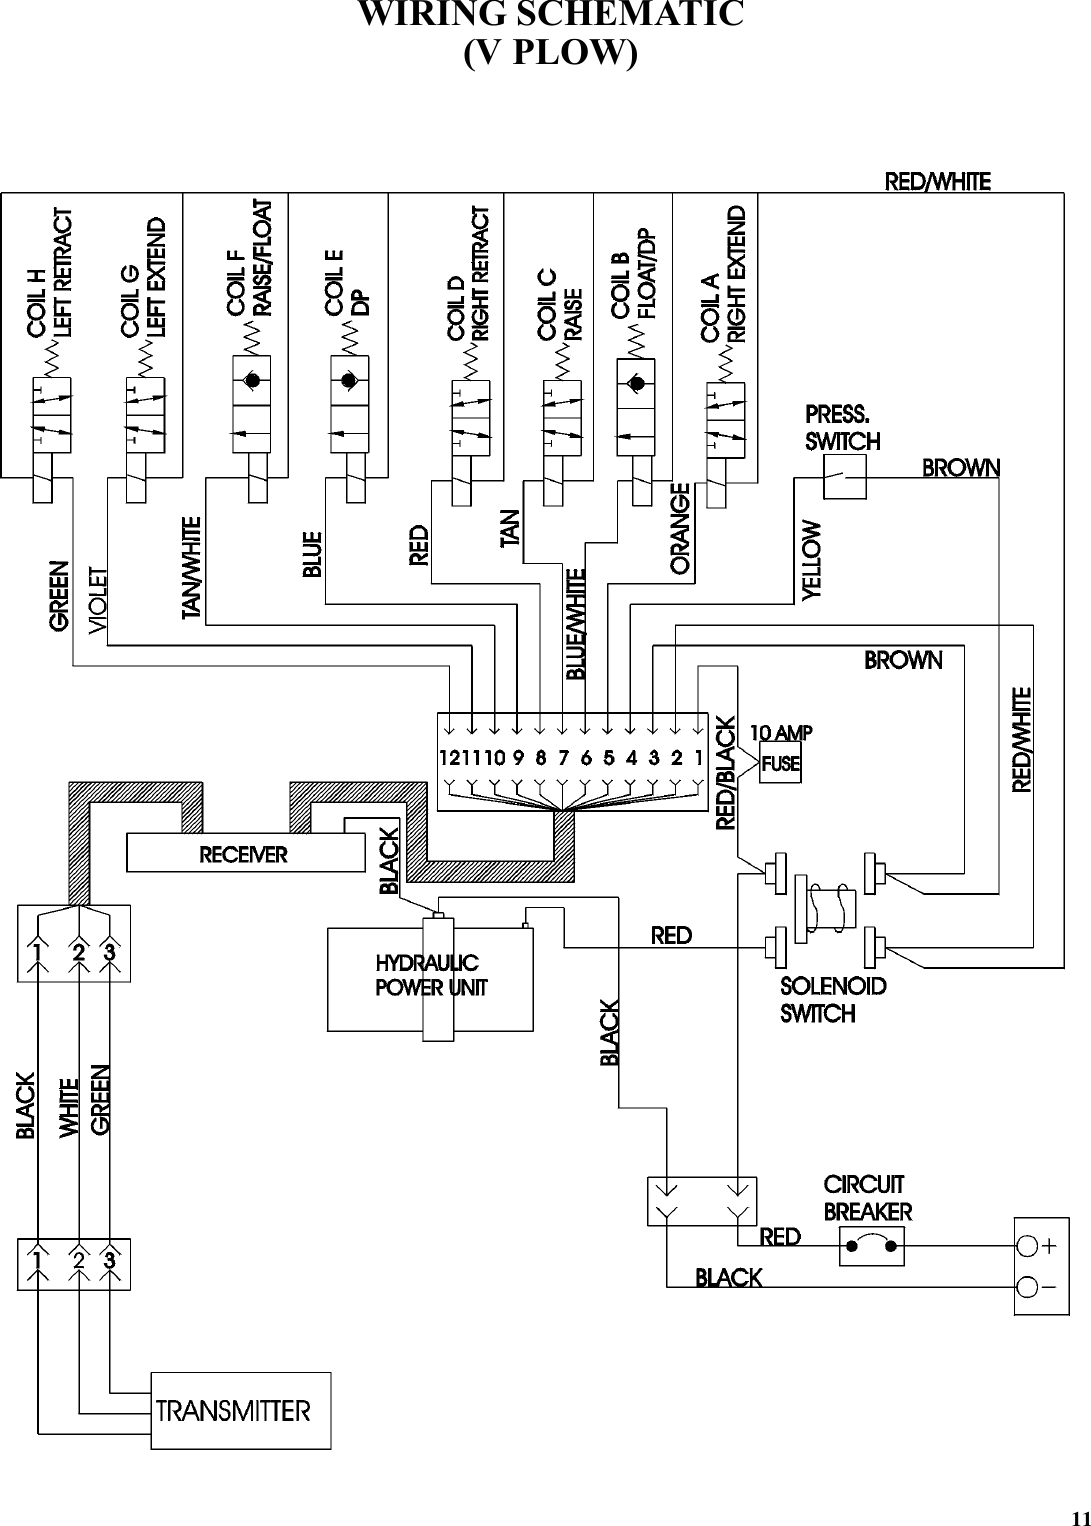 Minute Mount Plow Wiring Diagram from static-cdn.imageservice.cloud